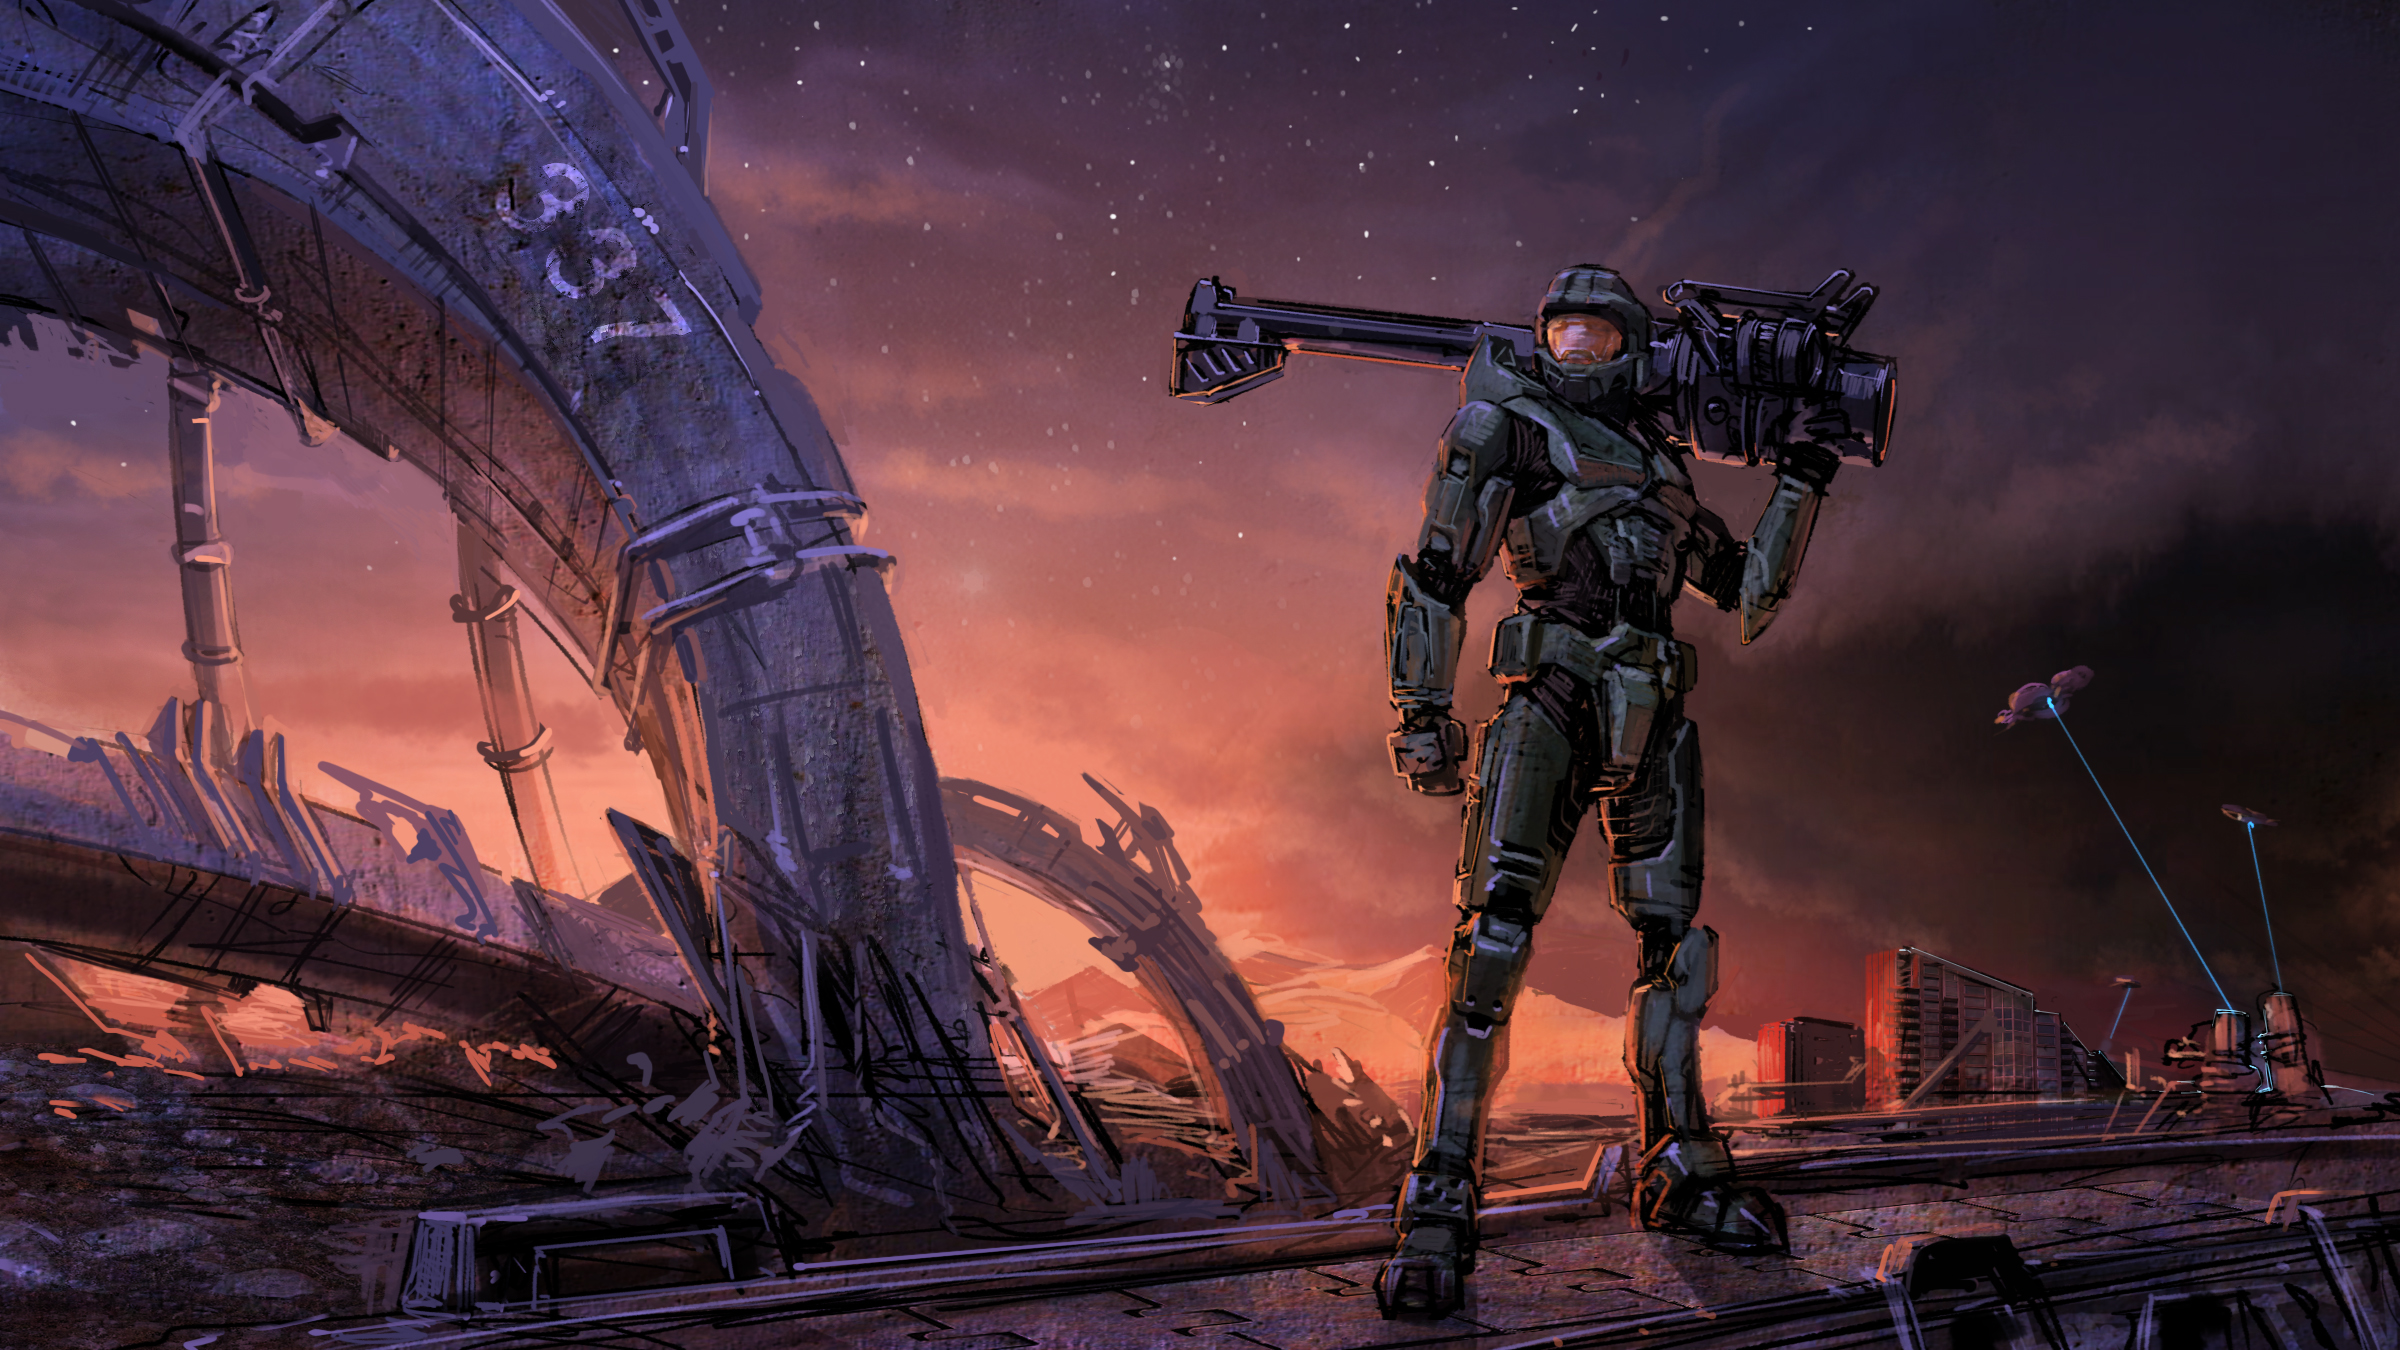 Download Halo 3 Background 126732 Hd Wallpaper